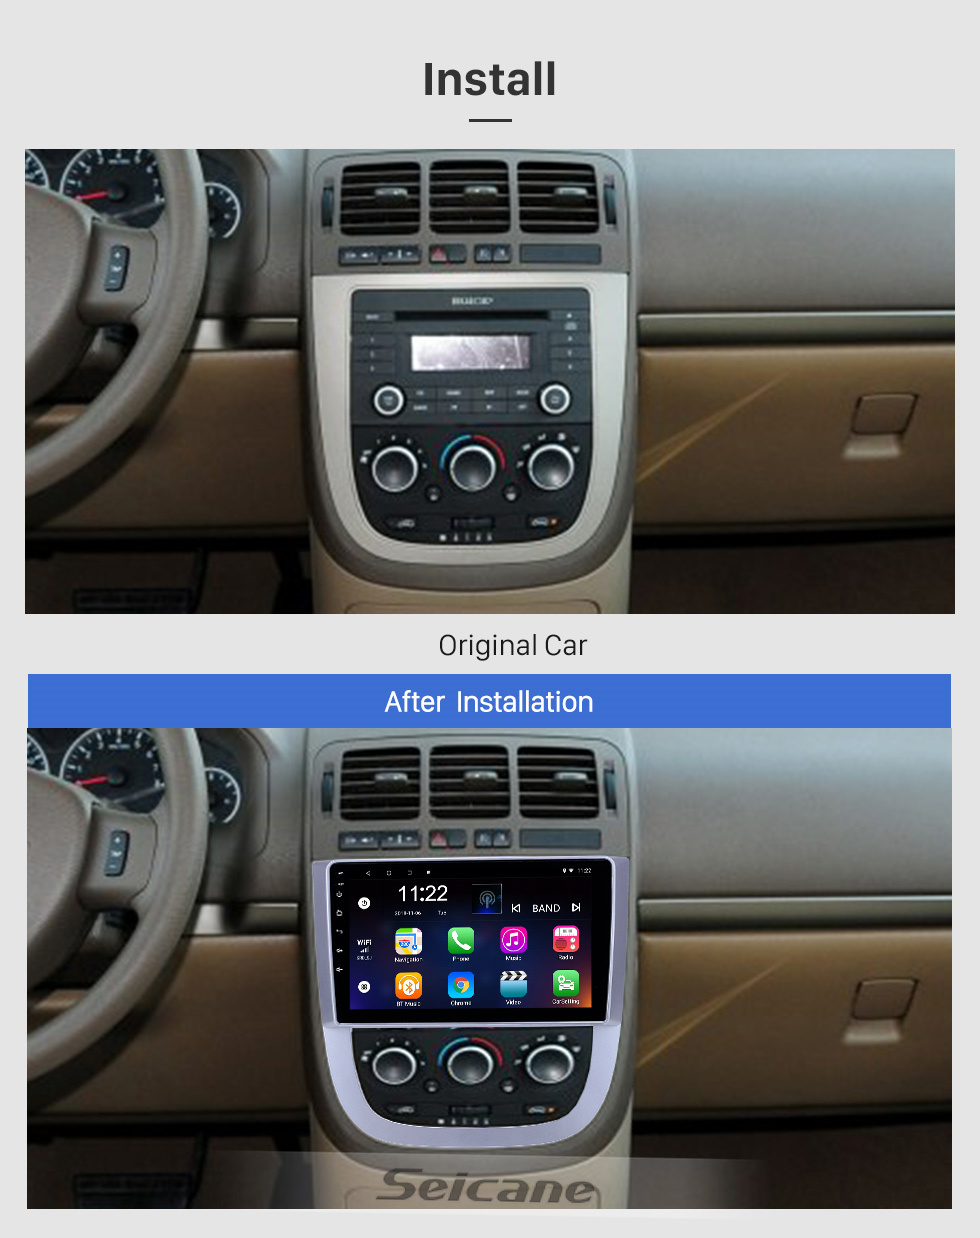 Seicane OEM 9 inch Android 10.0 Radio for 2005-2012 Buick FirstLand GL8 Bluetooth WIFI HD Touchscreen GPS Navigation support Carplay DVR Rear camera